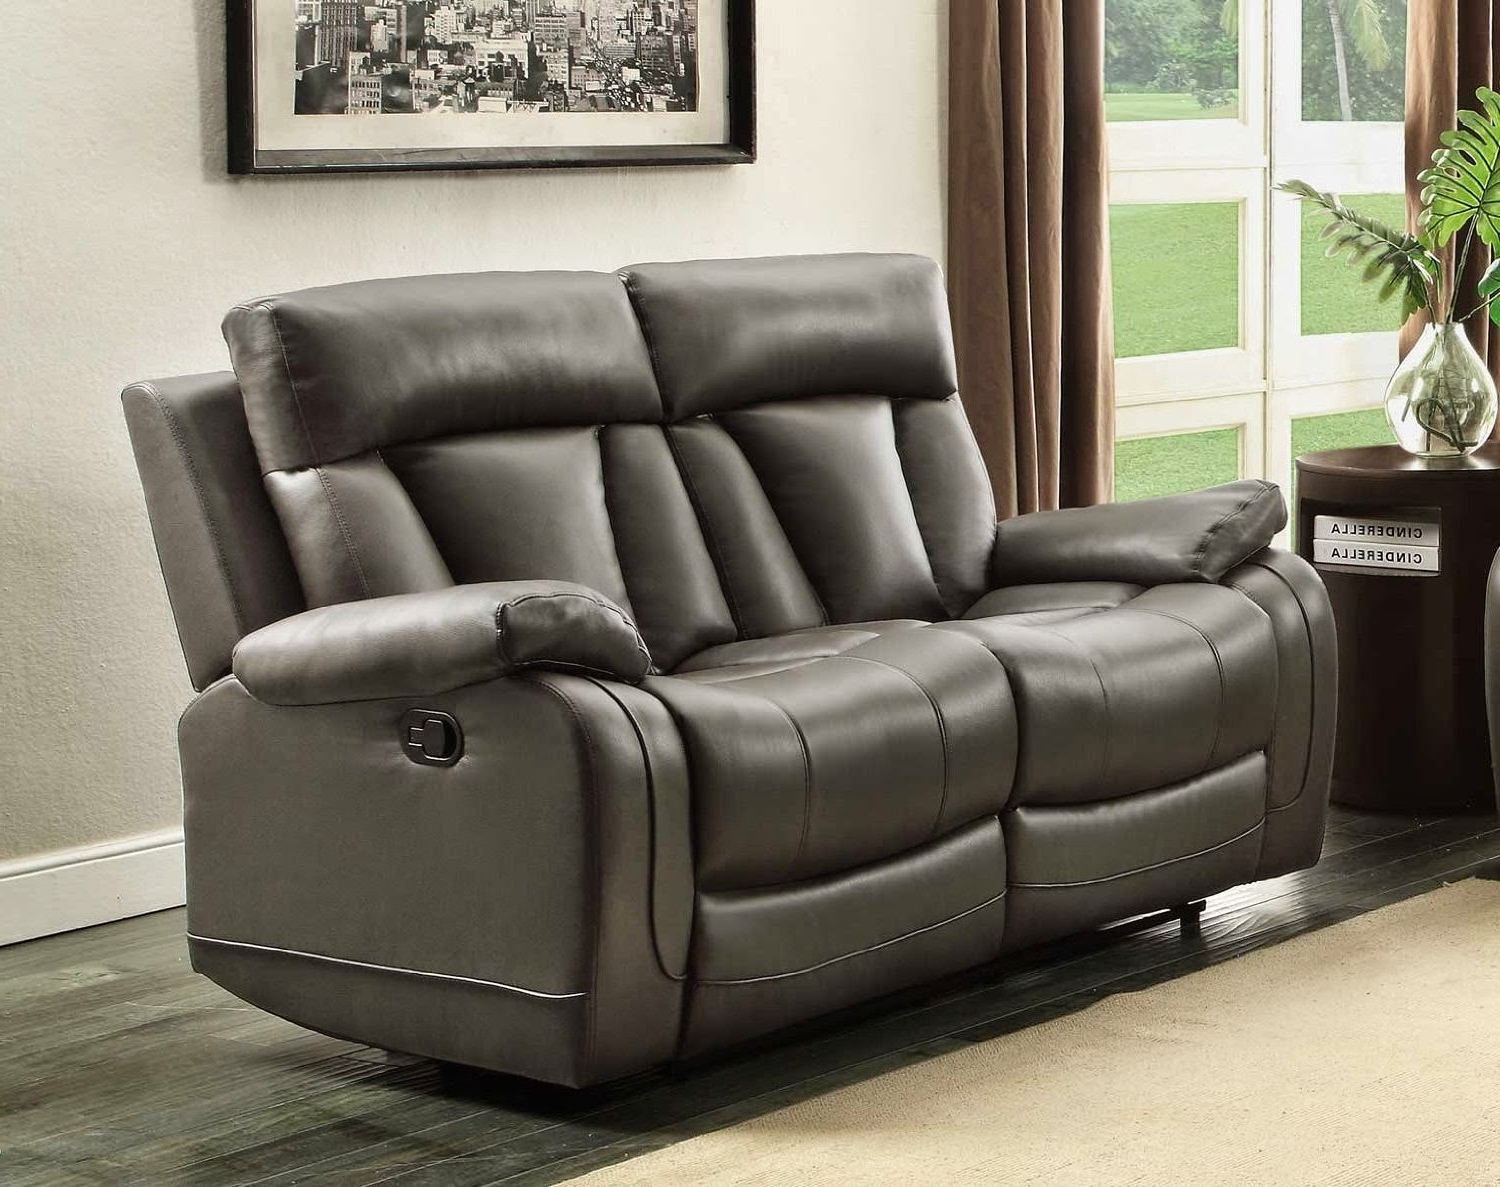 Newest 2 Seater Recliner Leather Sofas Inside Best Reclining Sofa For The Money: Vivaldi 2 Seater Reclining (View 16 of 20)